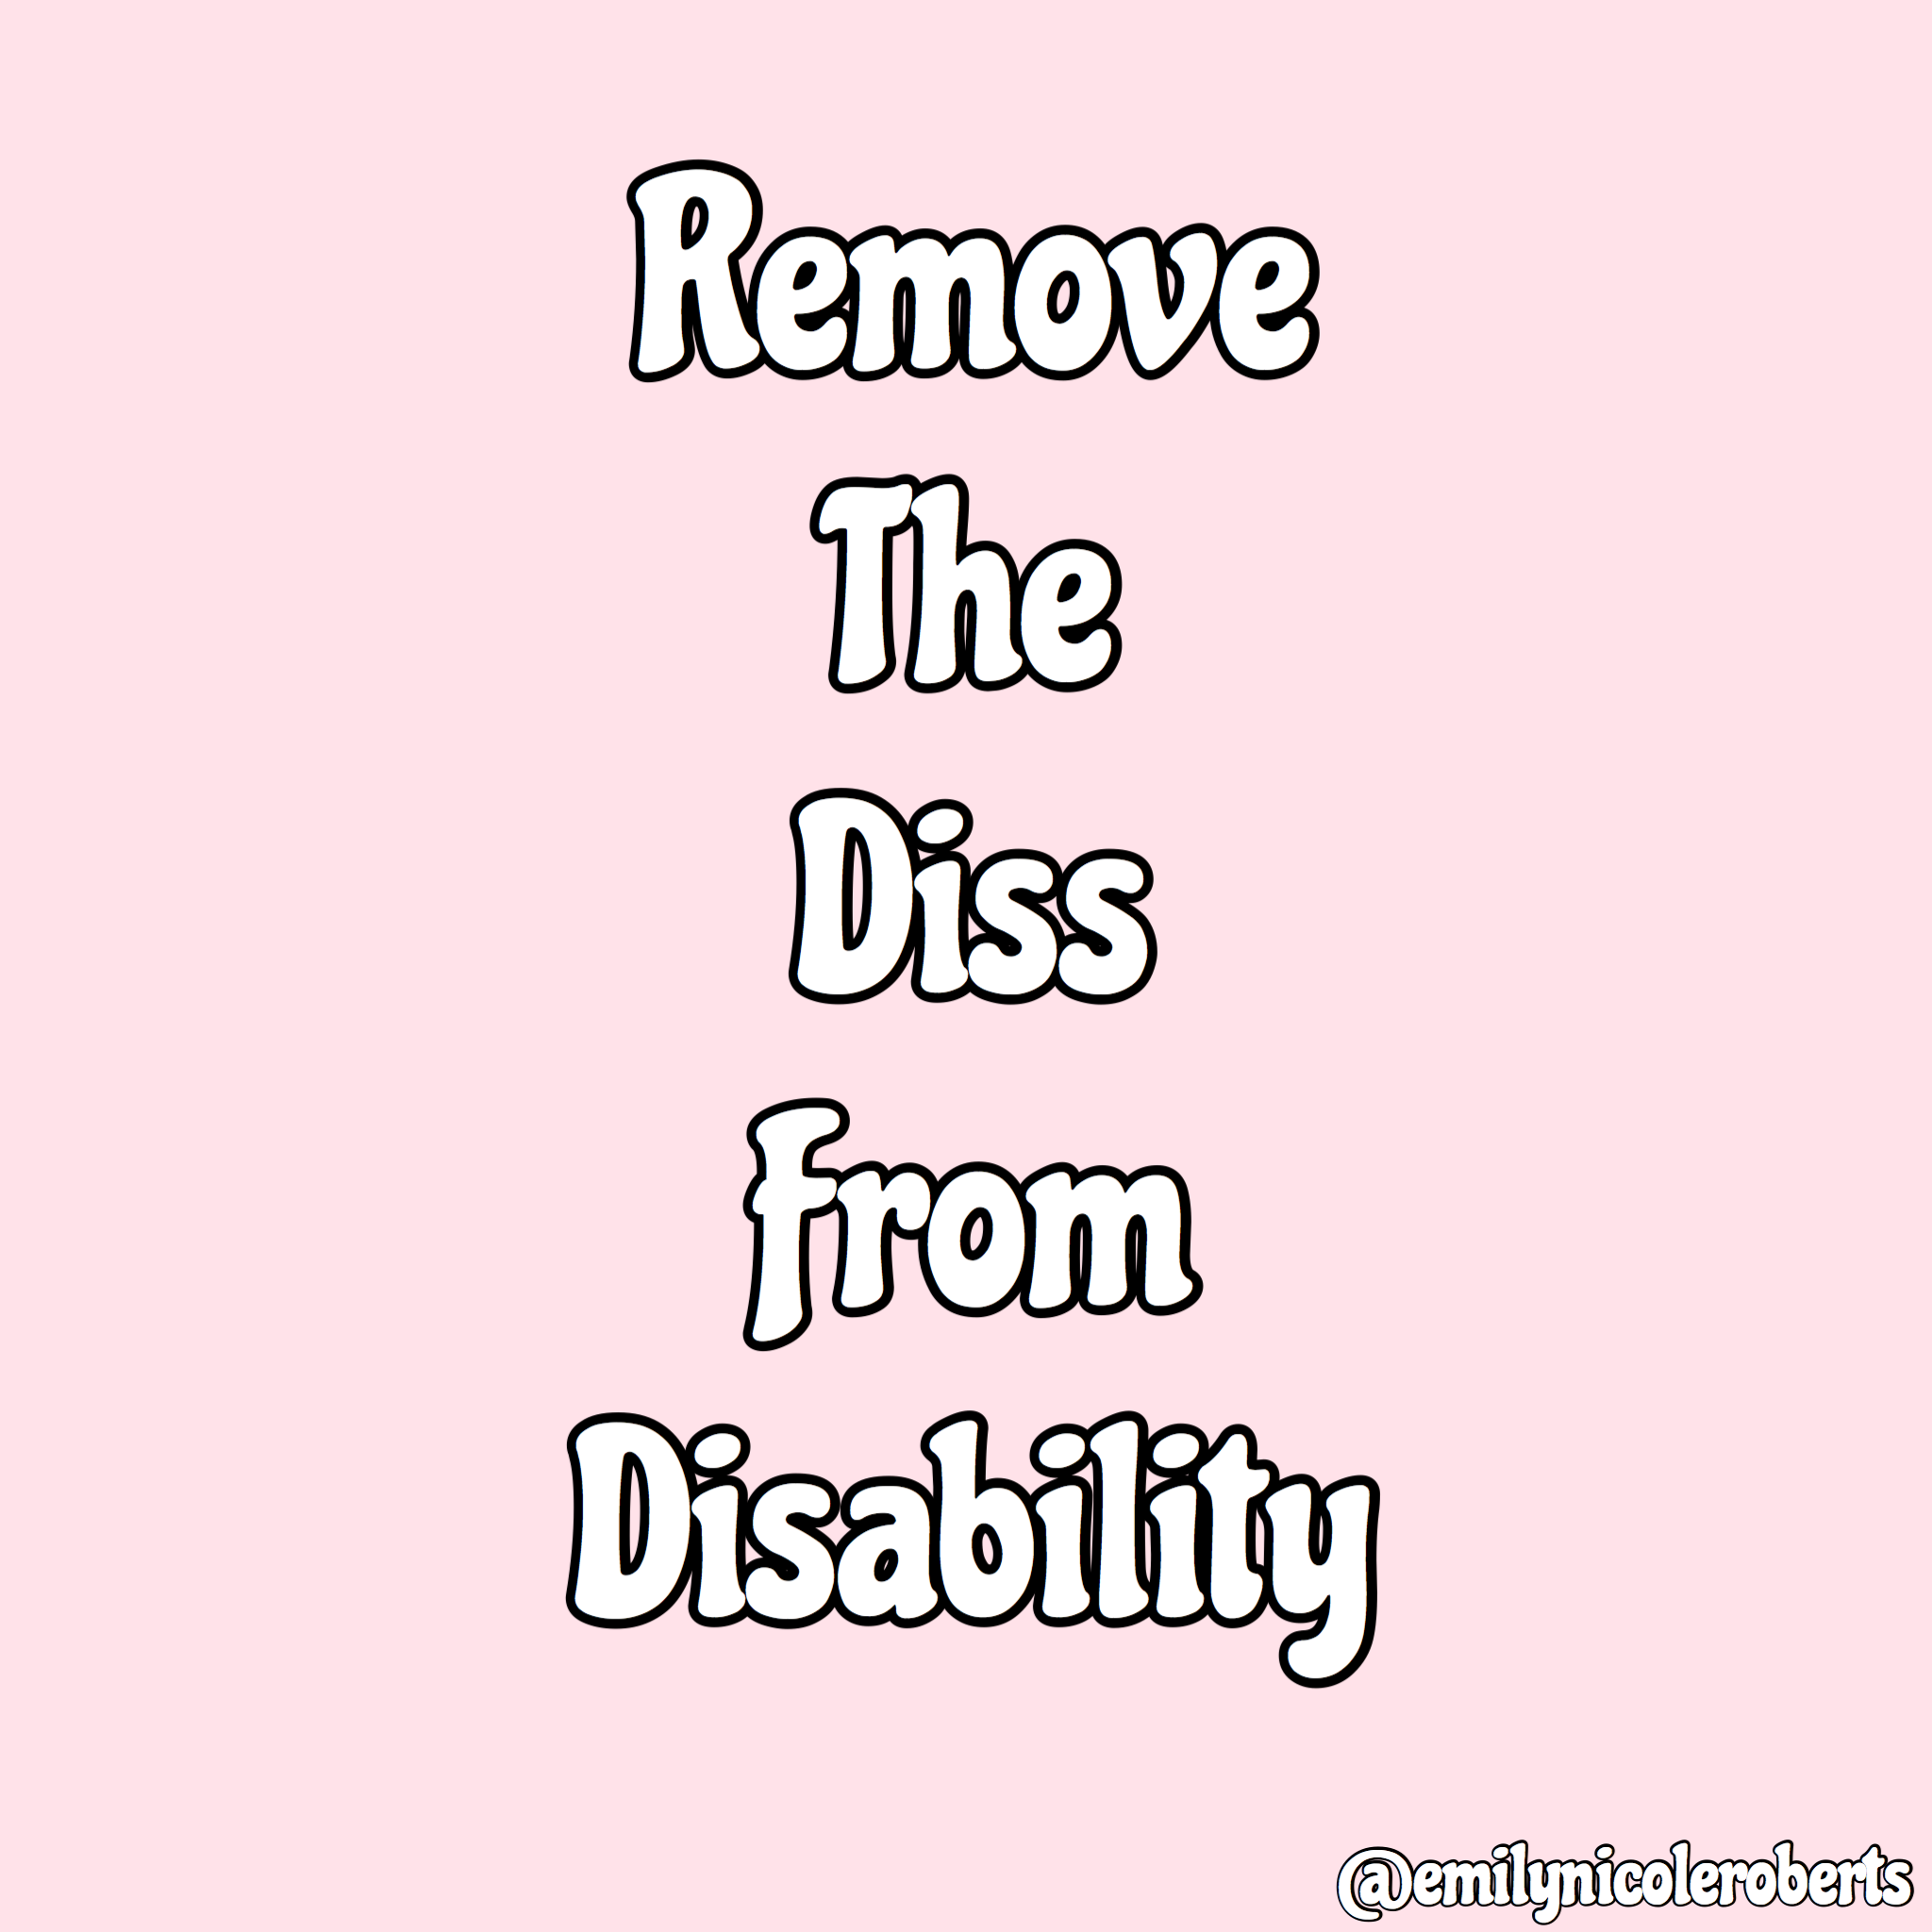 A graphic from Emily Nicole's Instagram says 'remove the diss from disability'